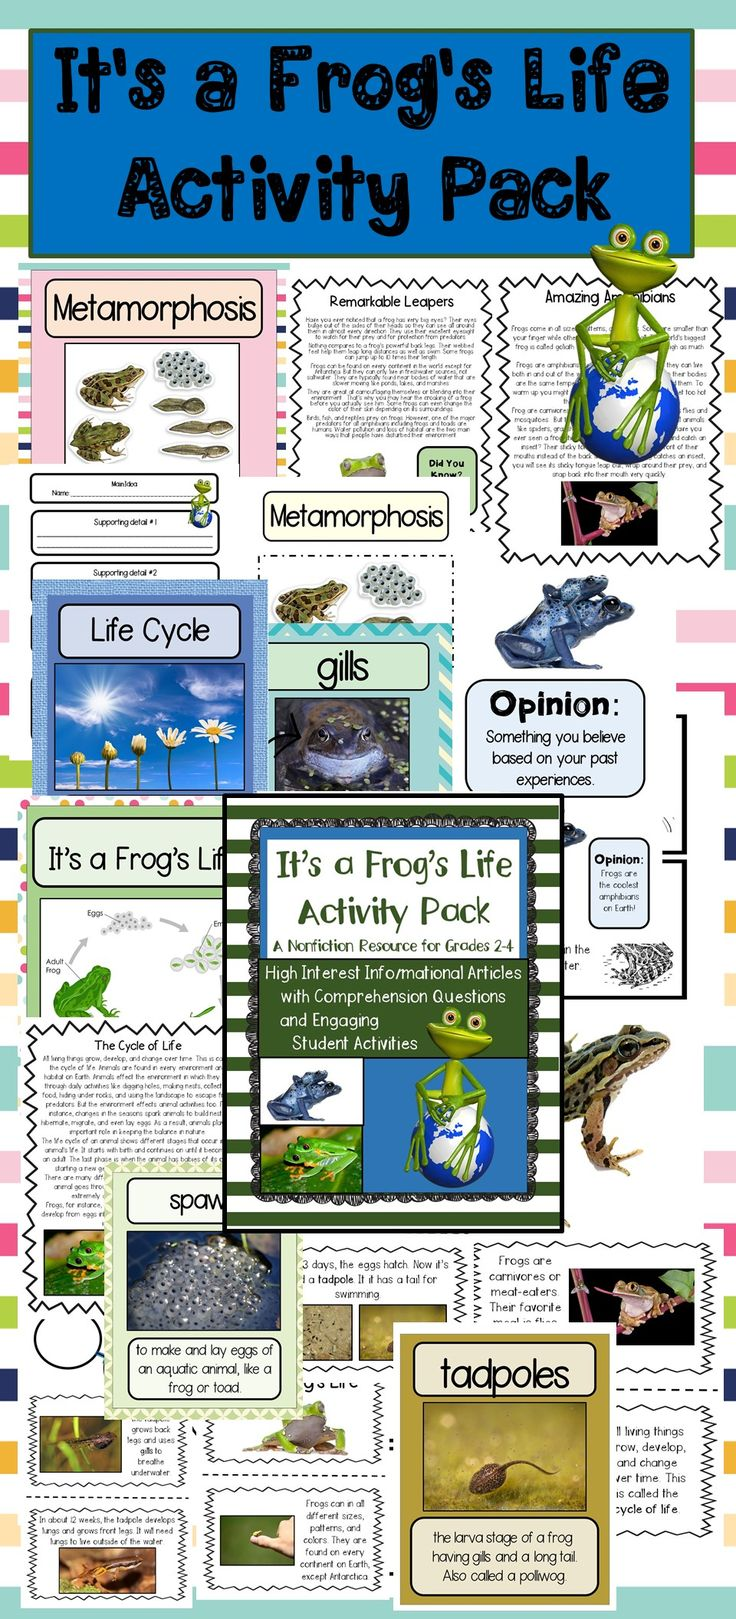 This product includes everything you need to teach all about frogs! There are three informational articles with real life photos and comprehension questions for older students plus a mini-book that describes and explains the cycle of life for students. Just added: A special case study on Poison Dart Frogs There's also a template for younger students to create and color their own mini-book related to a frog's cycle of life.